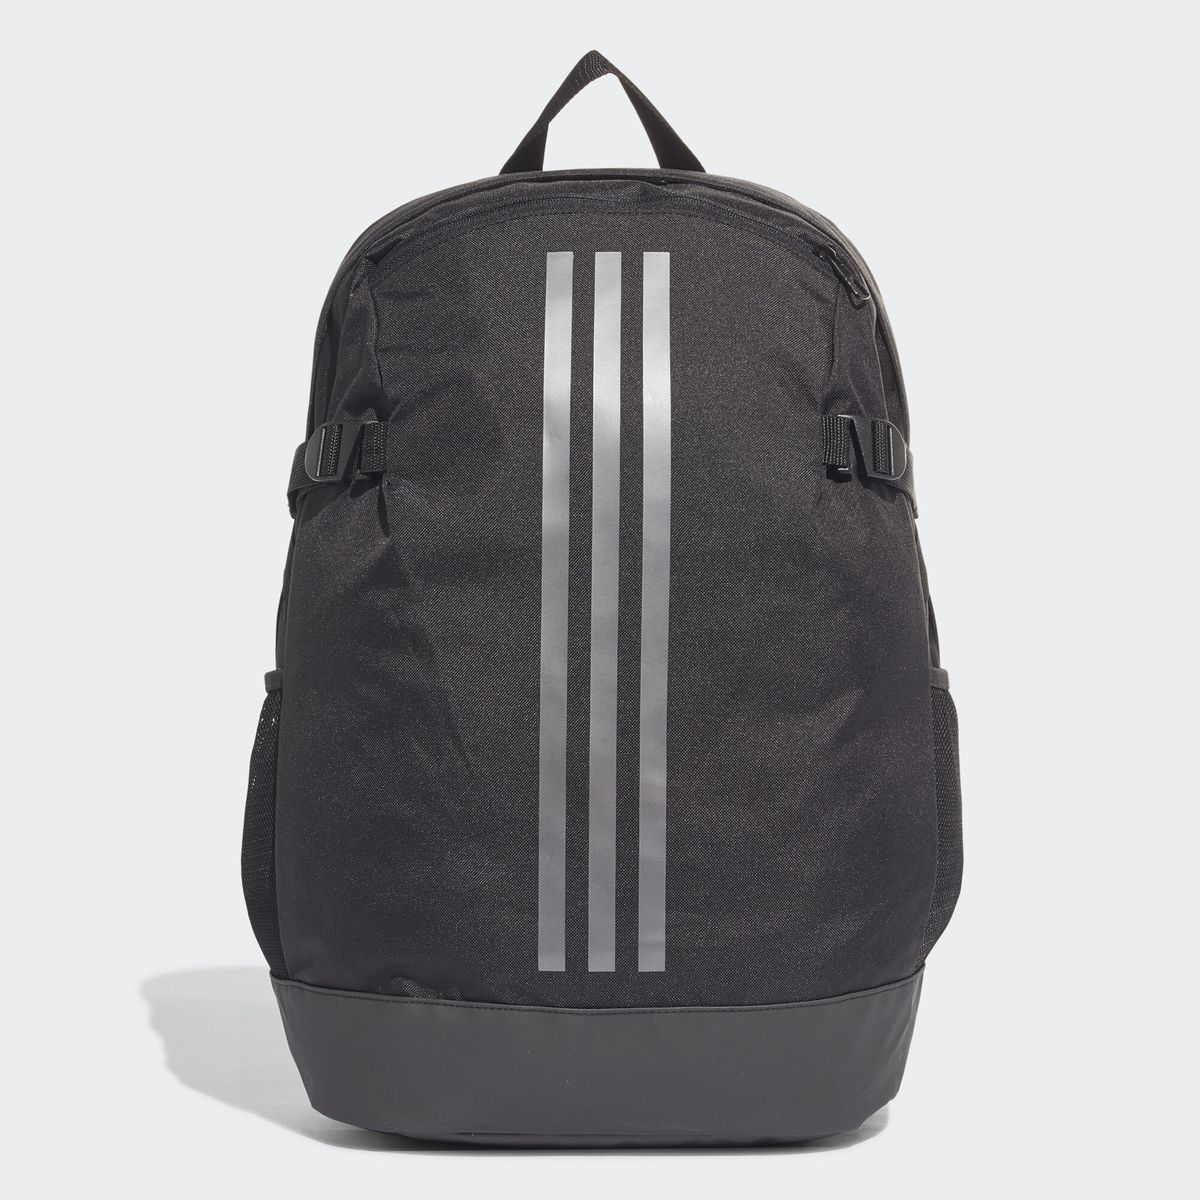 Sac À Dos Power 4 Loadspring Taille : Taille Unique   Sac